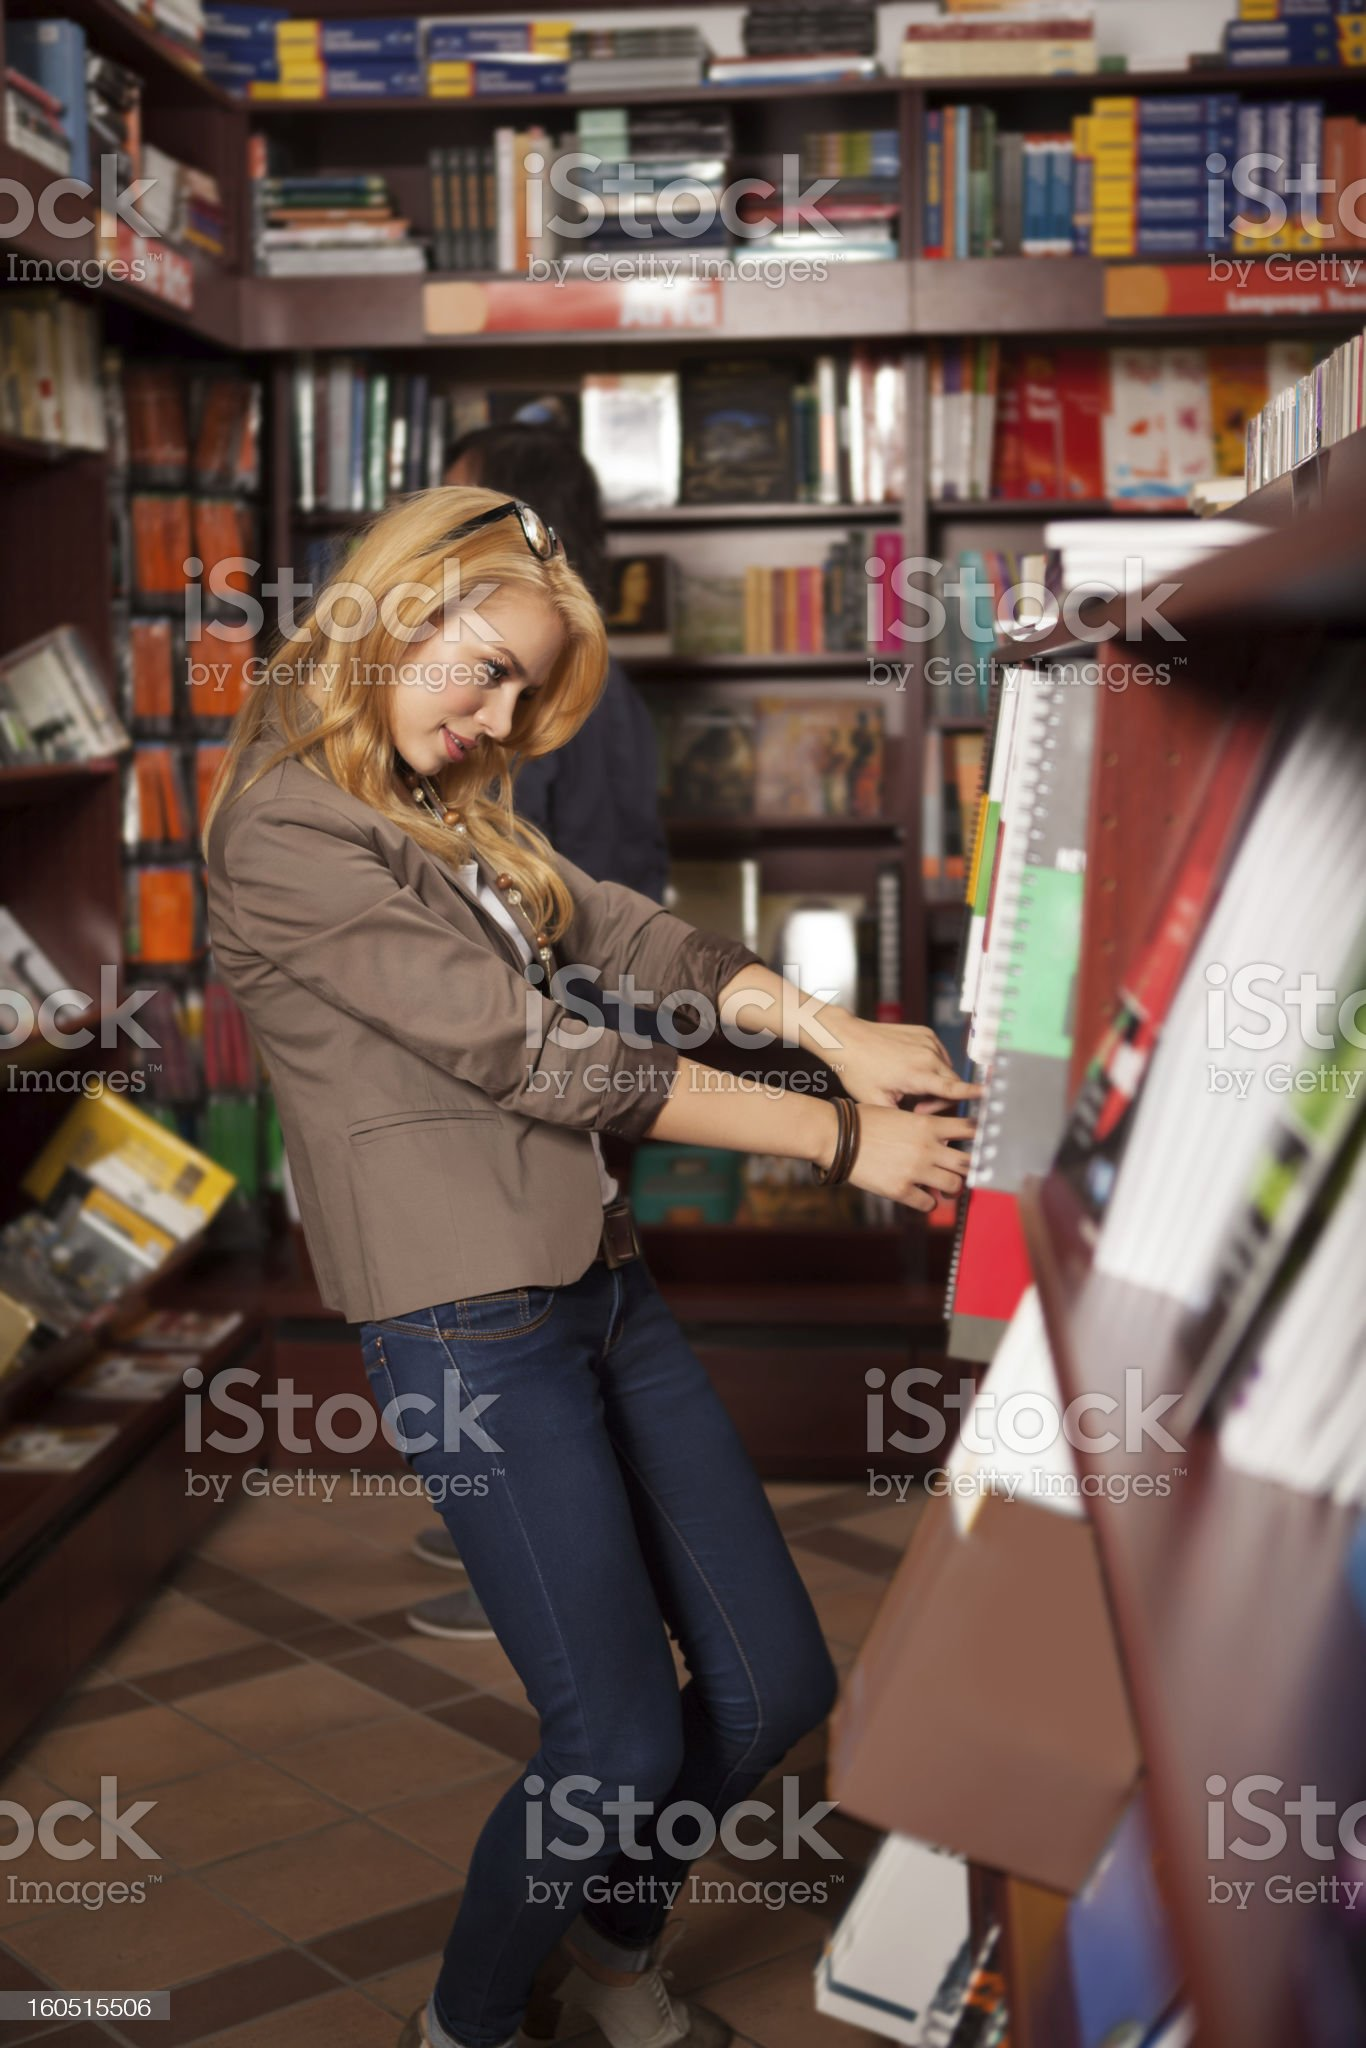 young girl searching for a specific book royalty-free stock photo